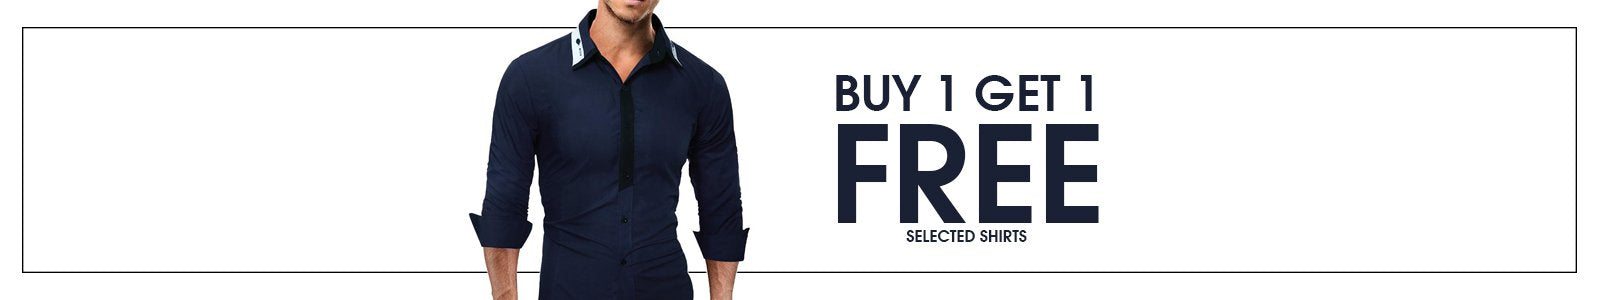 MEN'S SHIRTS BUY 1 GET 1 FREE